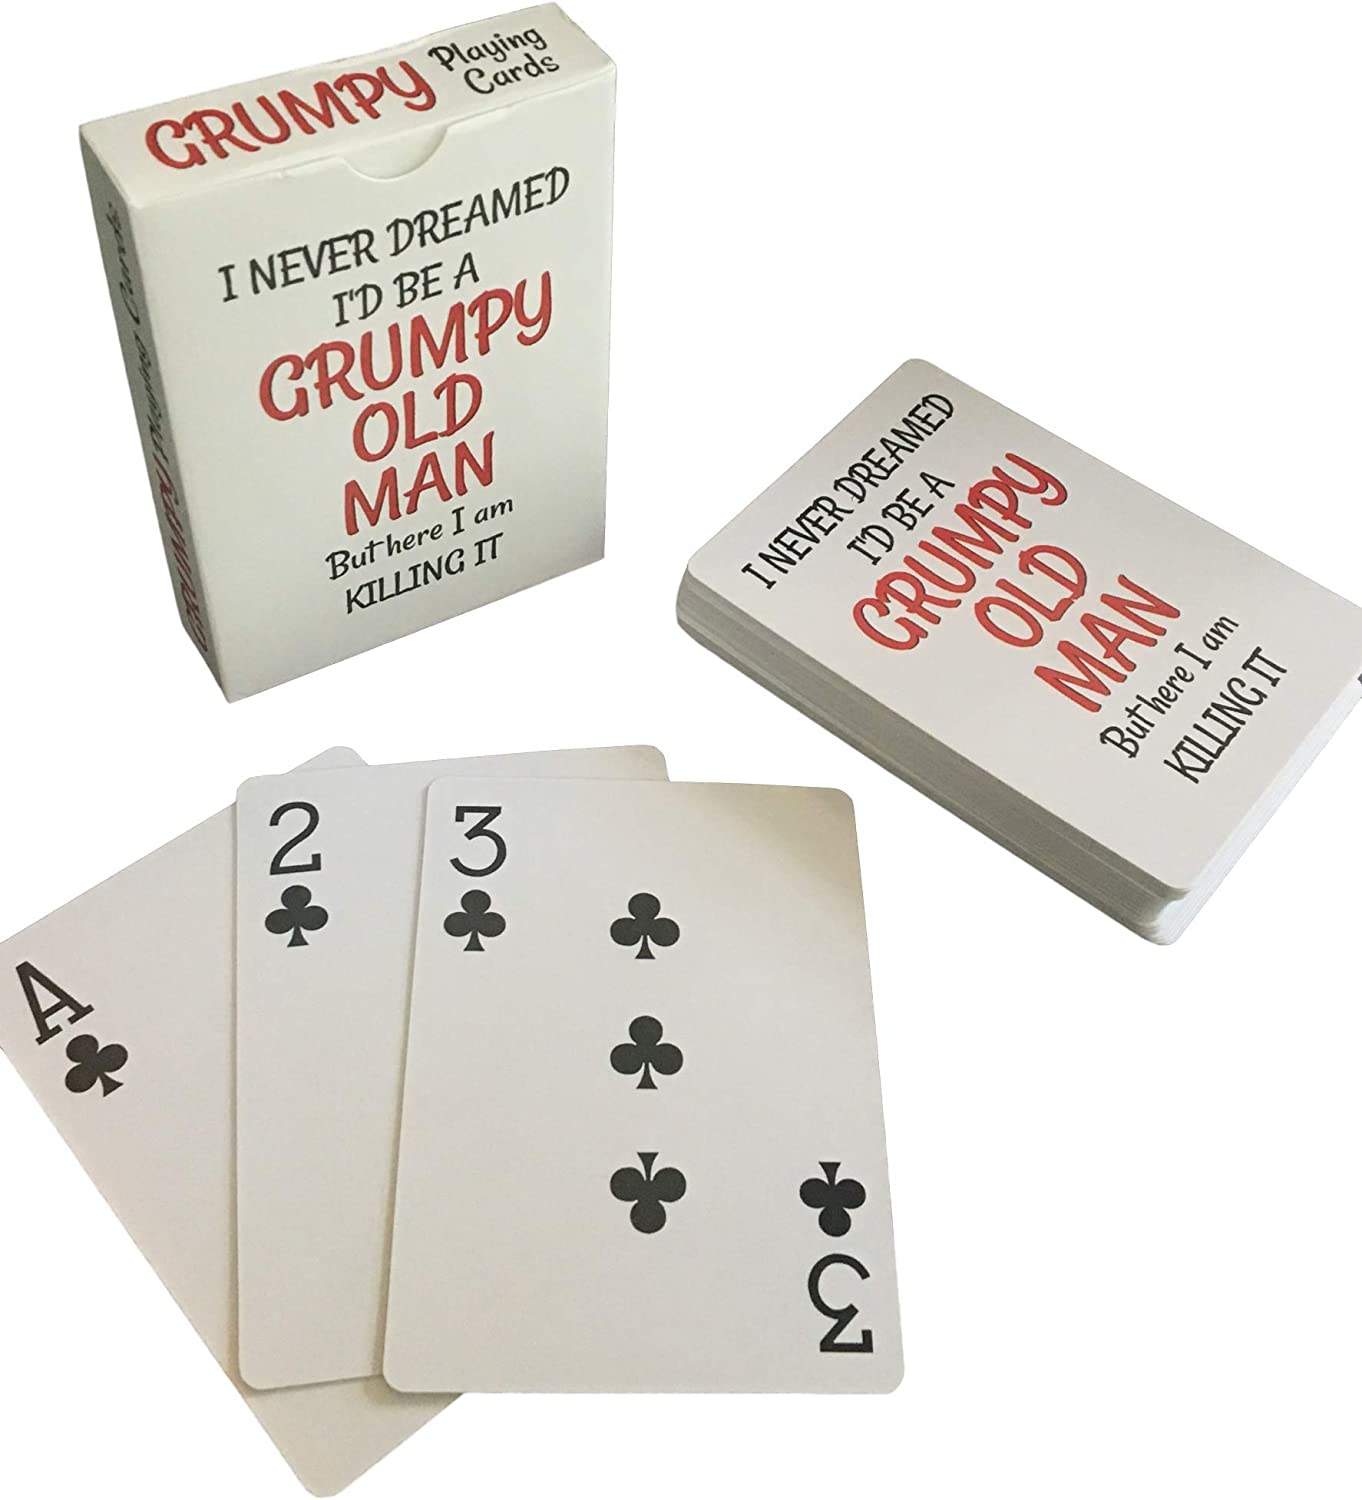 Large Print for Seniors Poker Sized for Texas Holdem Men Novelty Grumpy Old Man Jumbo Index Playing Cards Euchre Gag Gifts for 50th 60th 70th 75th 80th Birthday Bridge War Other Card Game